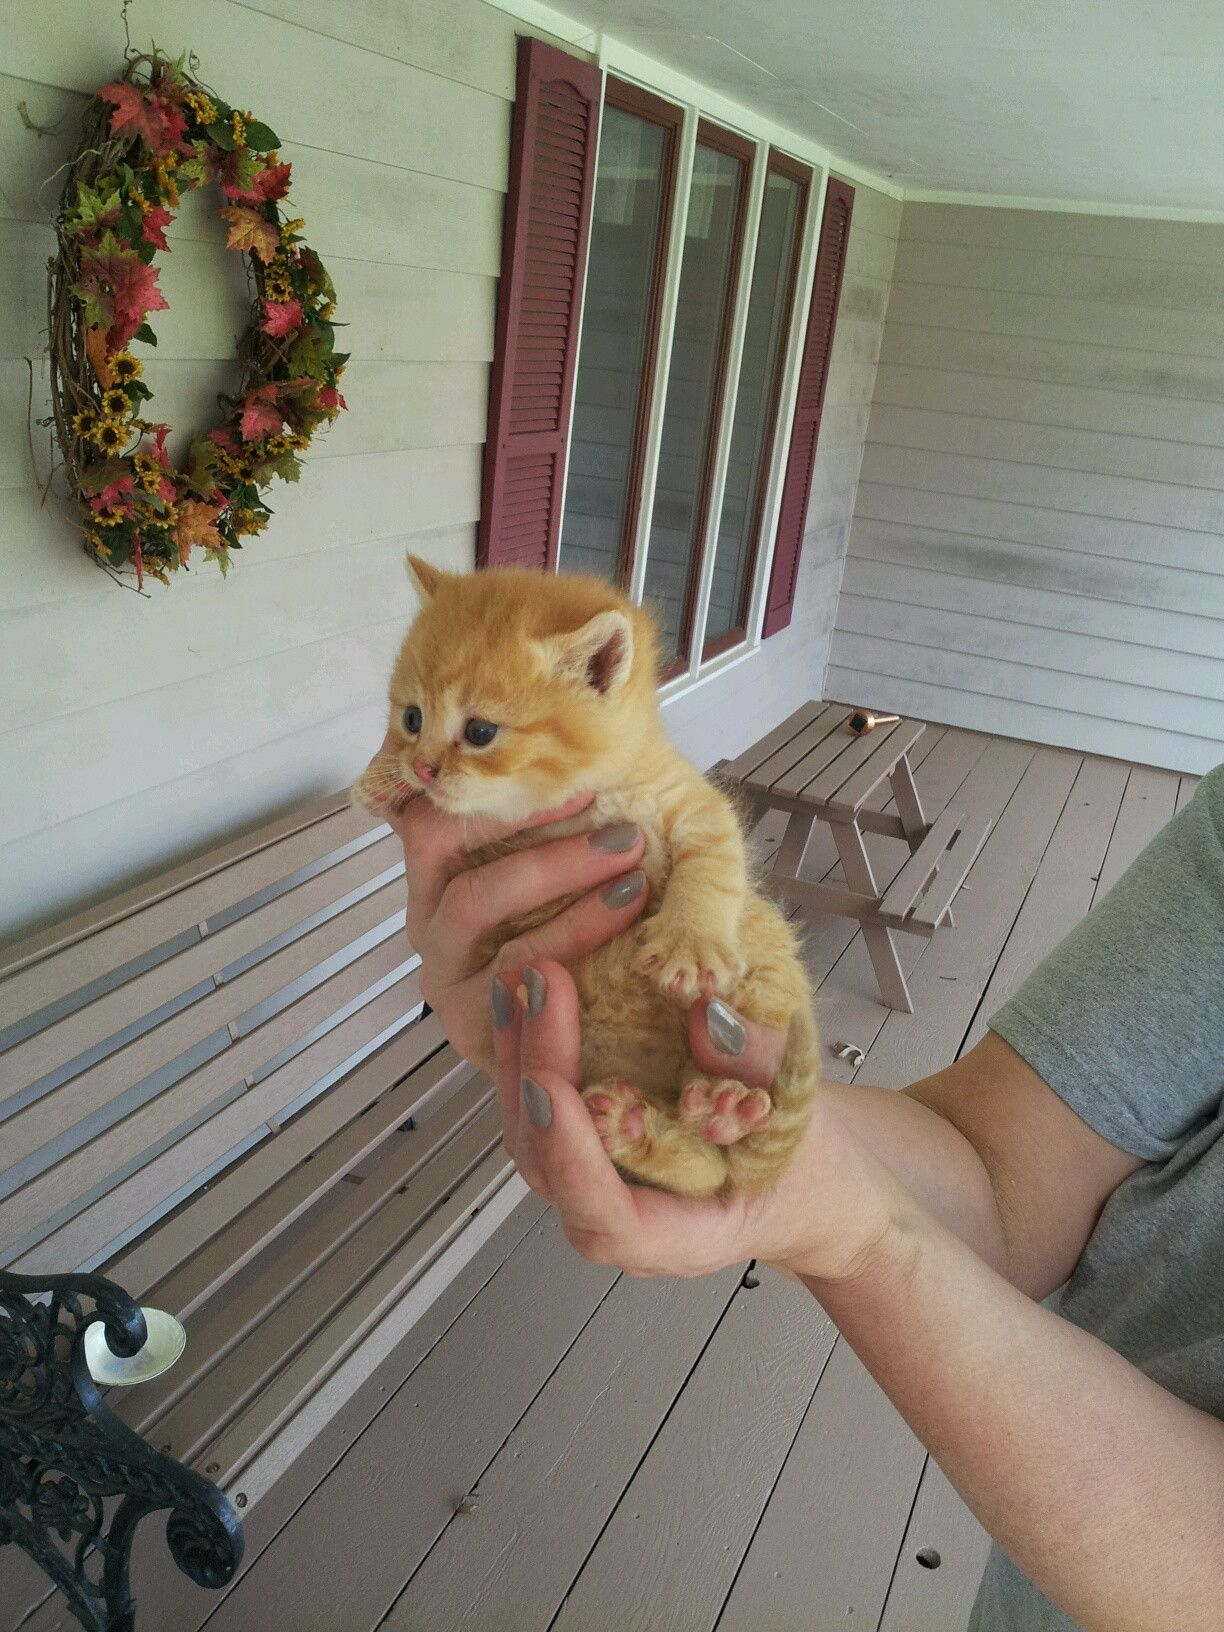 My mom found this little guy crying under our porch...the